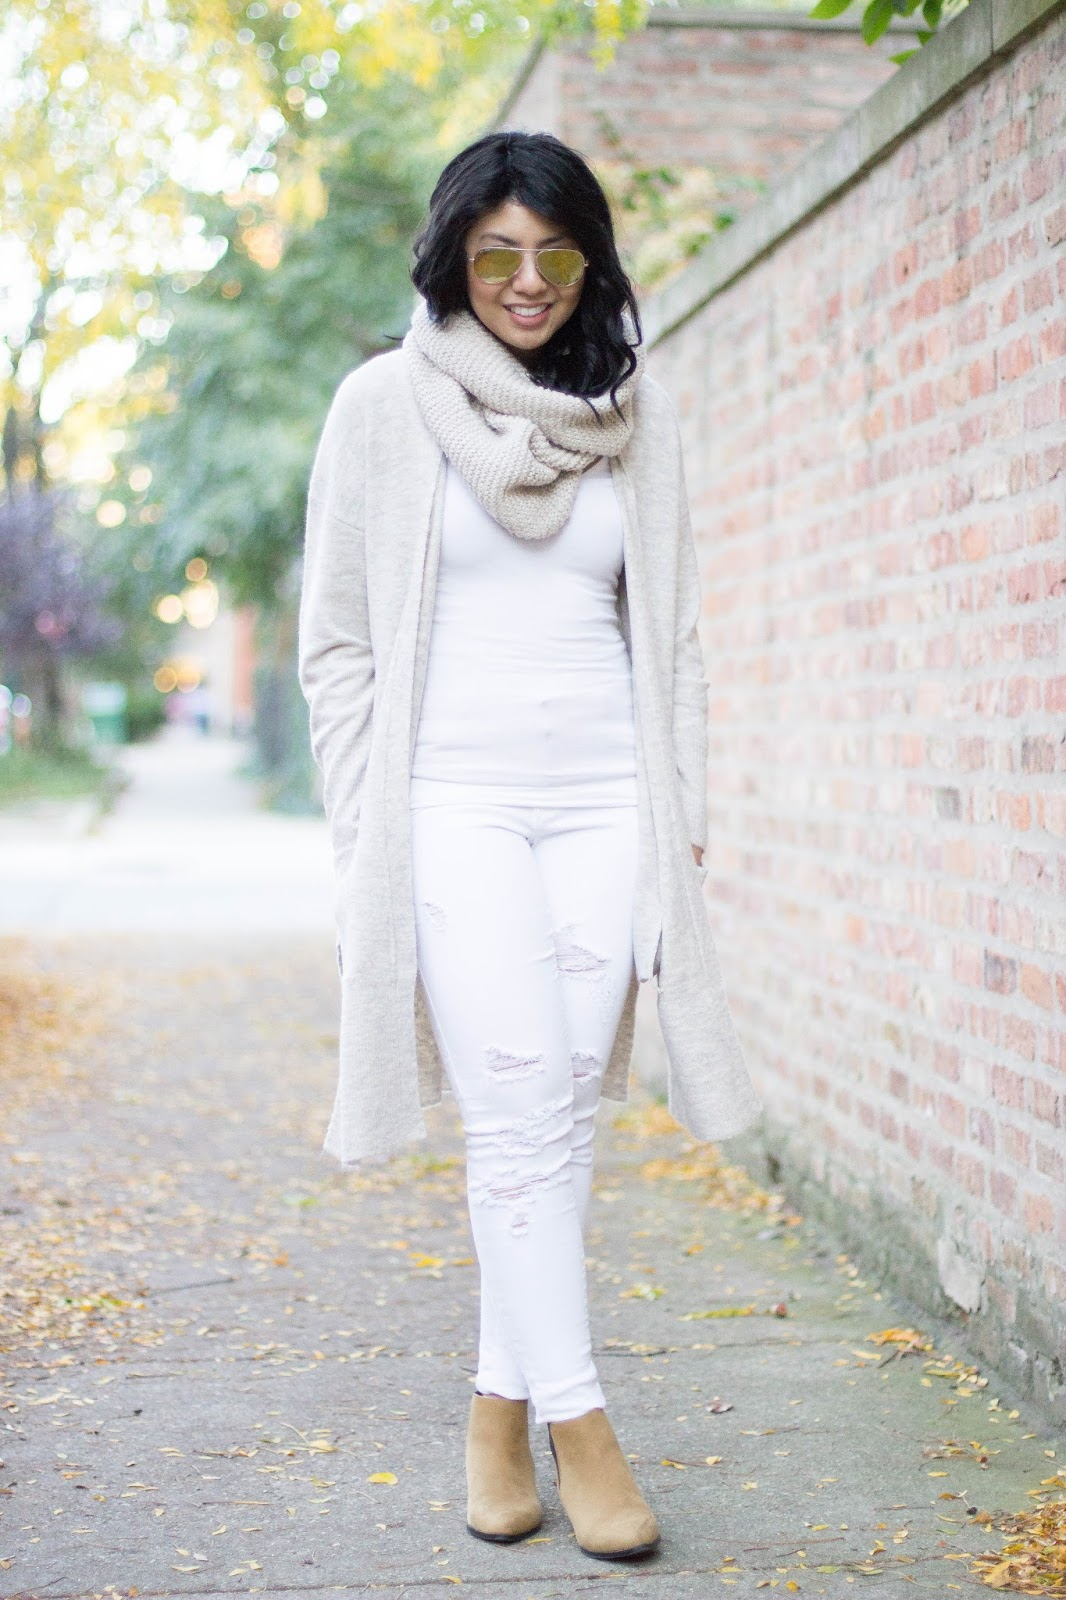 Top 5 Favorite Outfits To Wear In The Fall